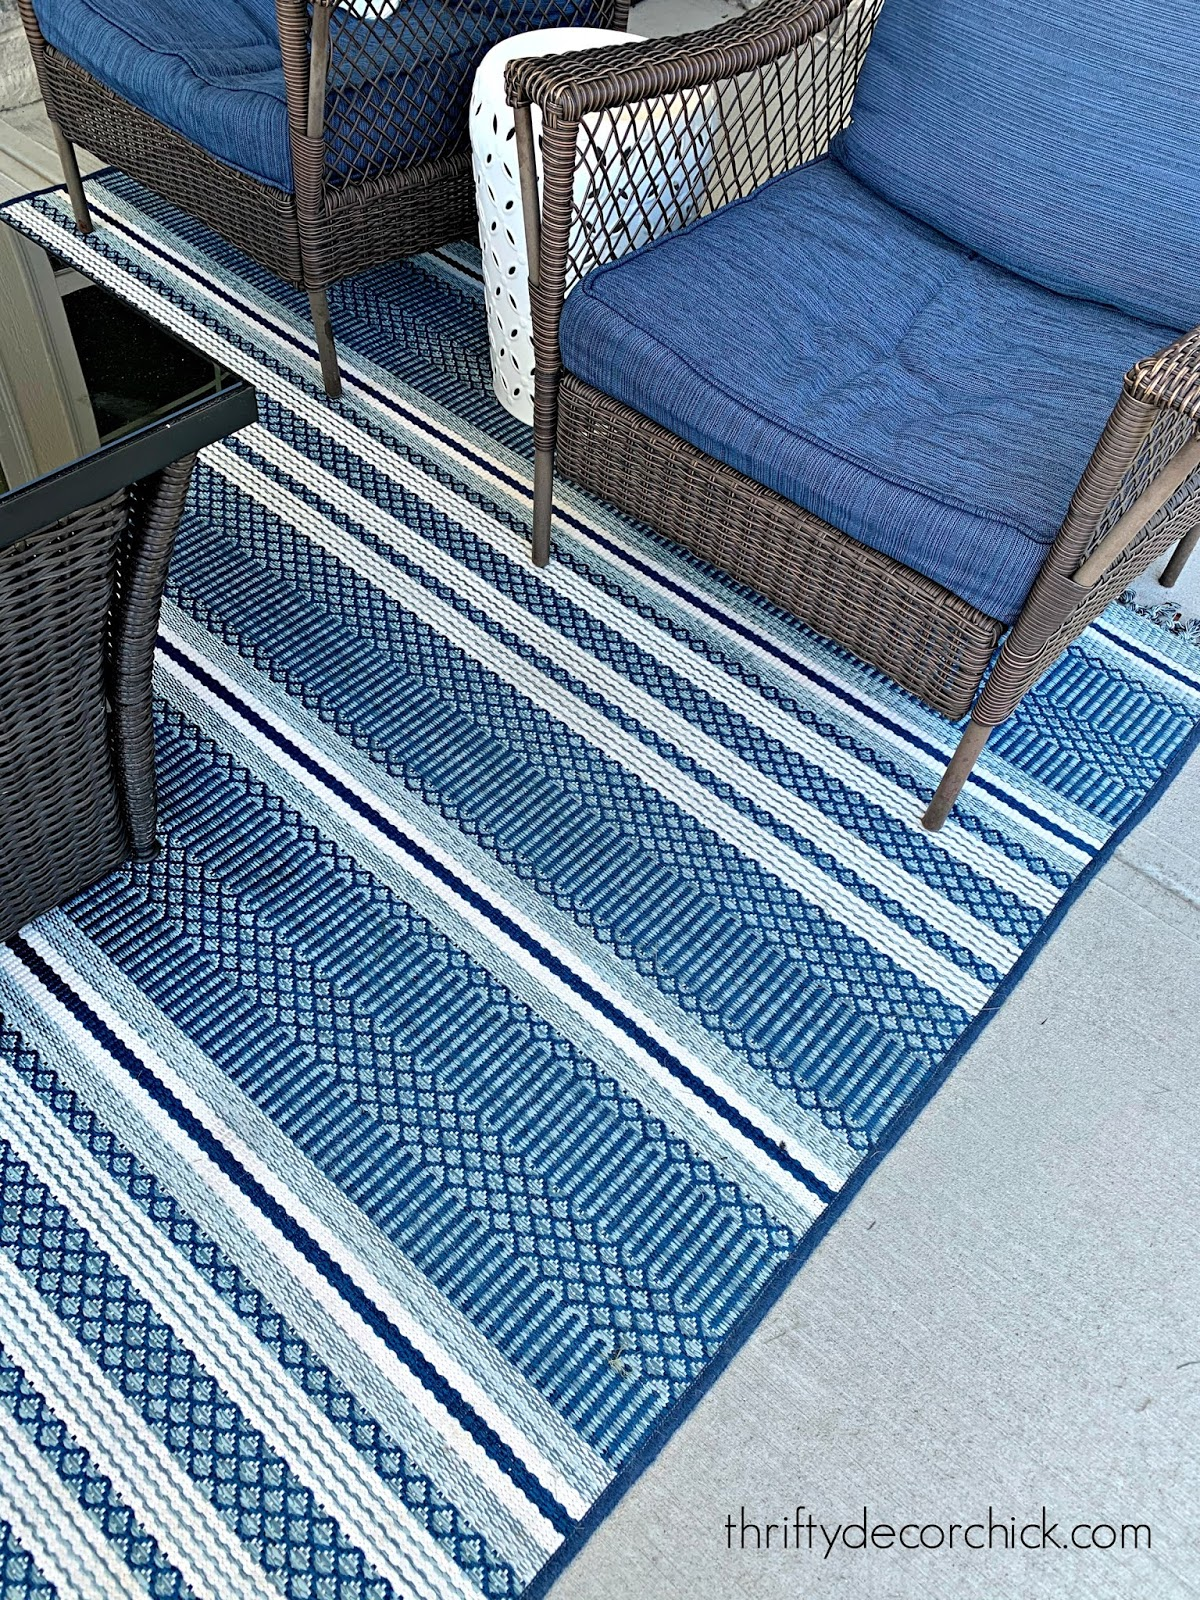 Outdoor rug cleaning with pressure washer